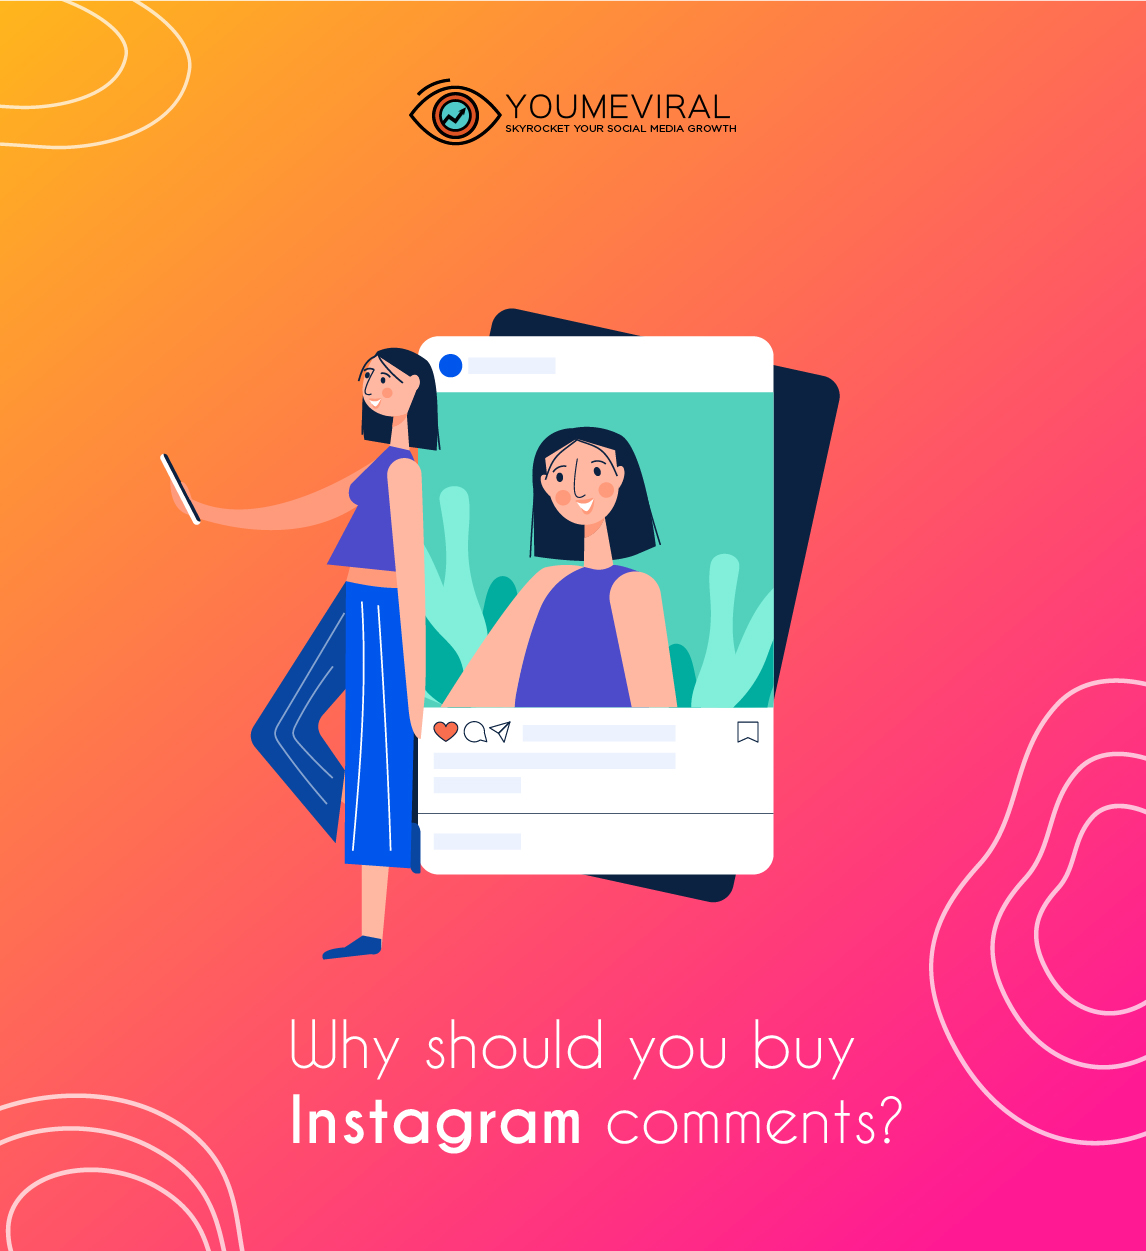 Why should you buy Instagram comments?